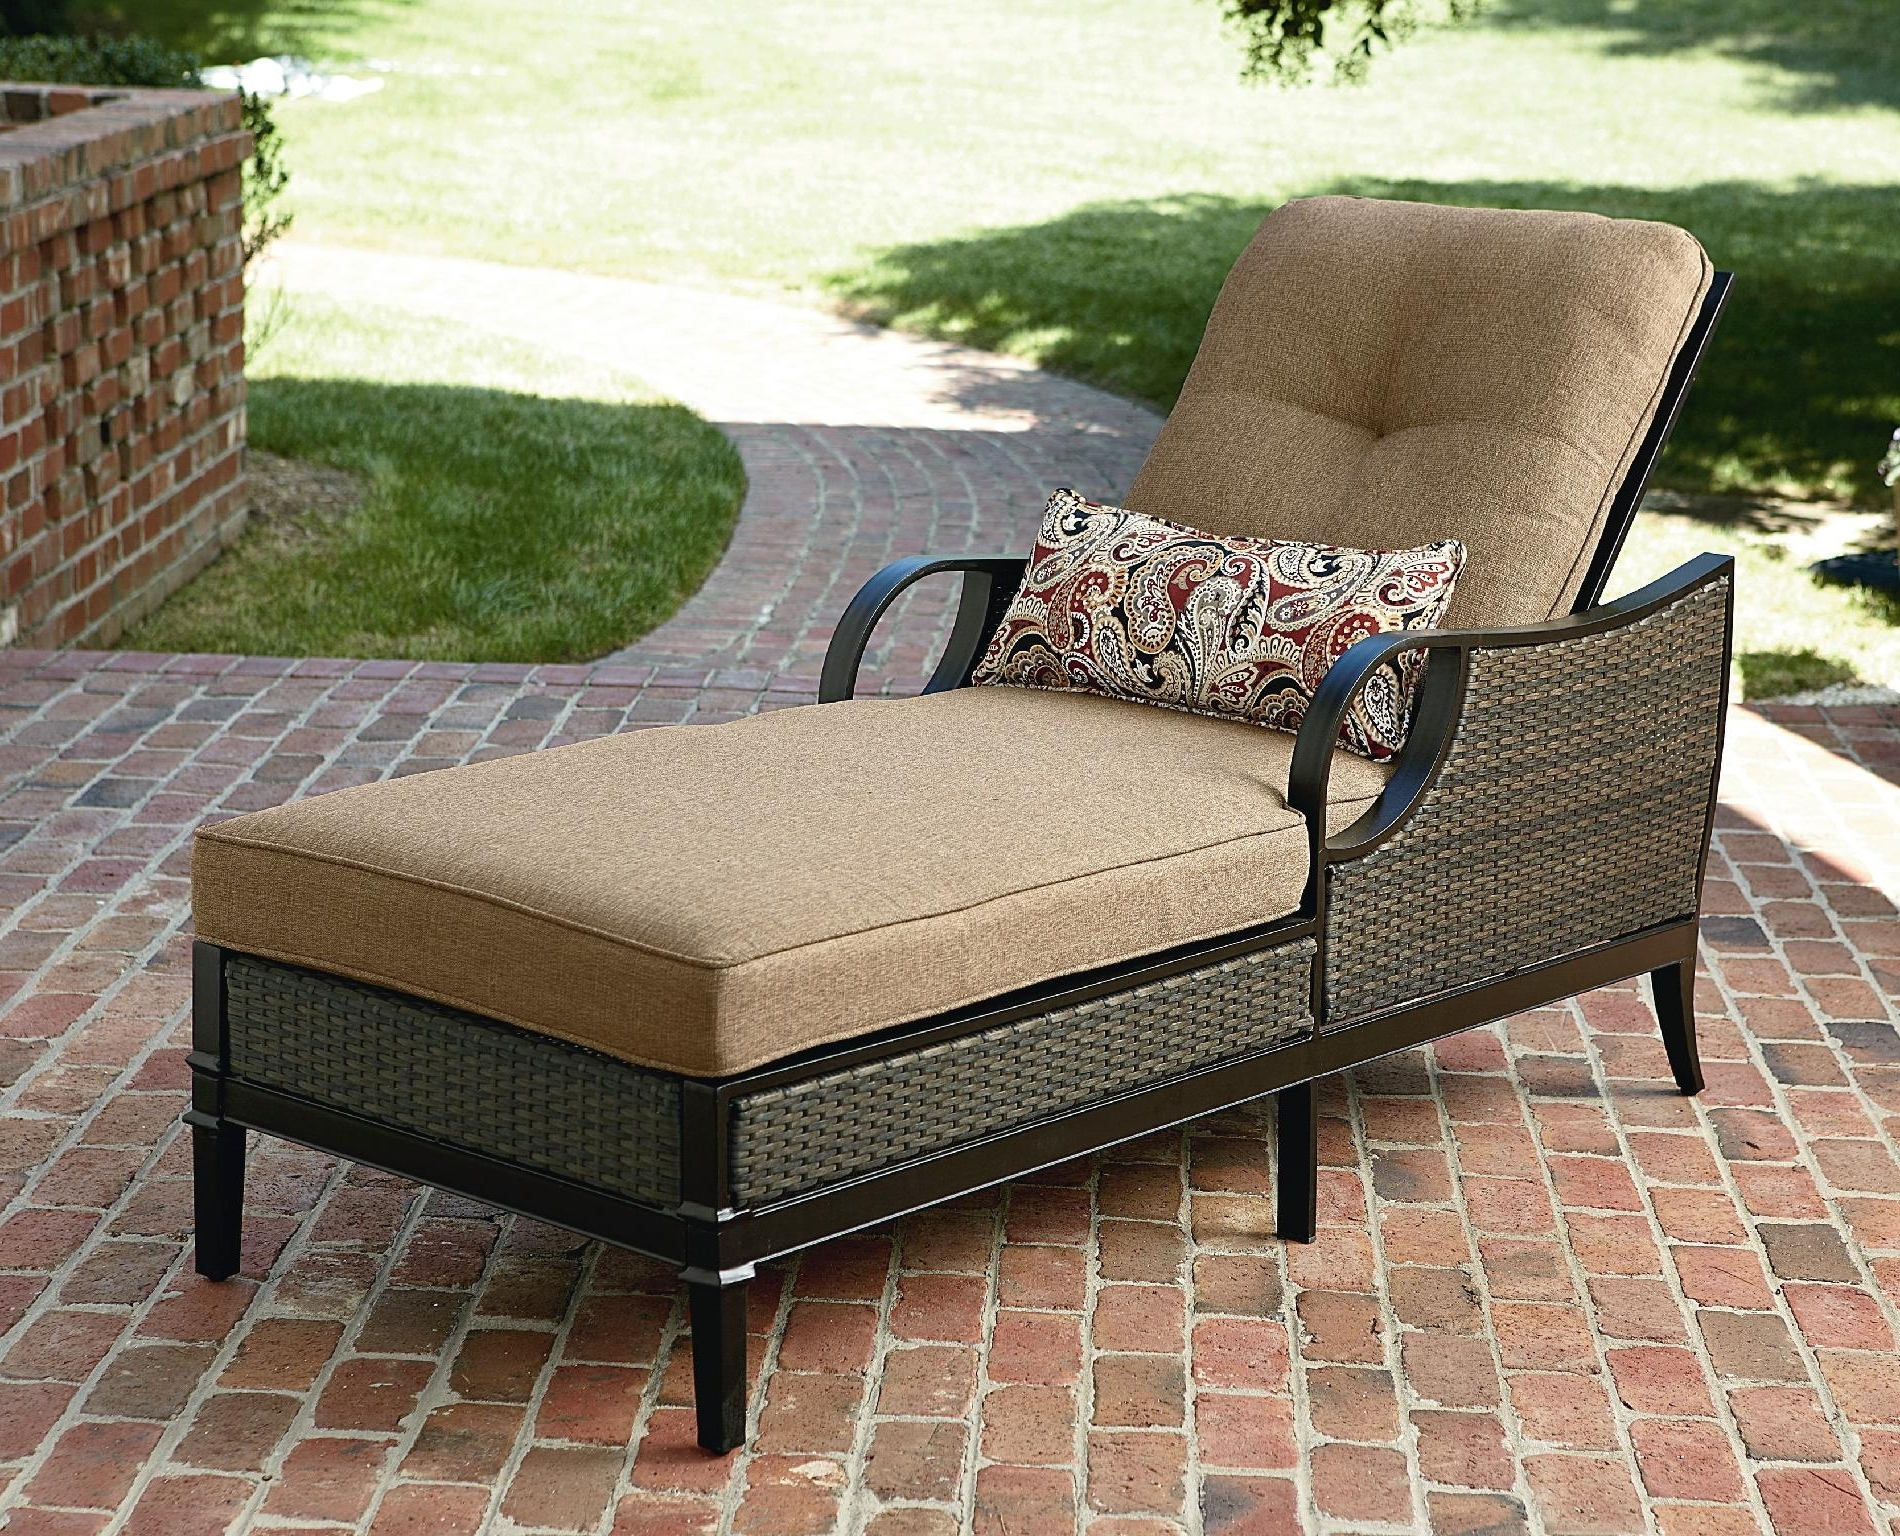 Outdoor Chaise Lounge Chairs With Arms Inside Trendy Chaise Lounge Chairs For Patio • Lounge Chairs Ideas (View 4 of 15)